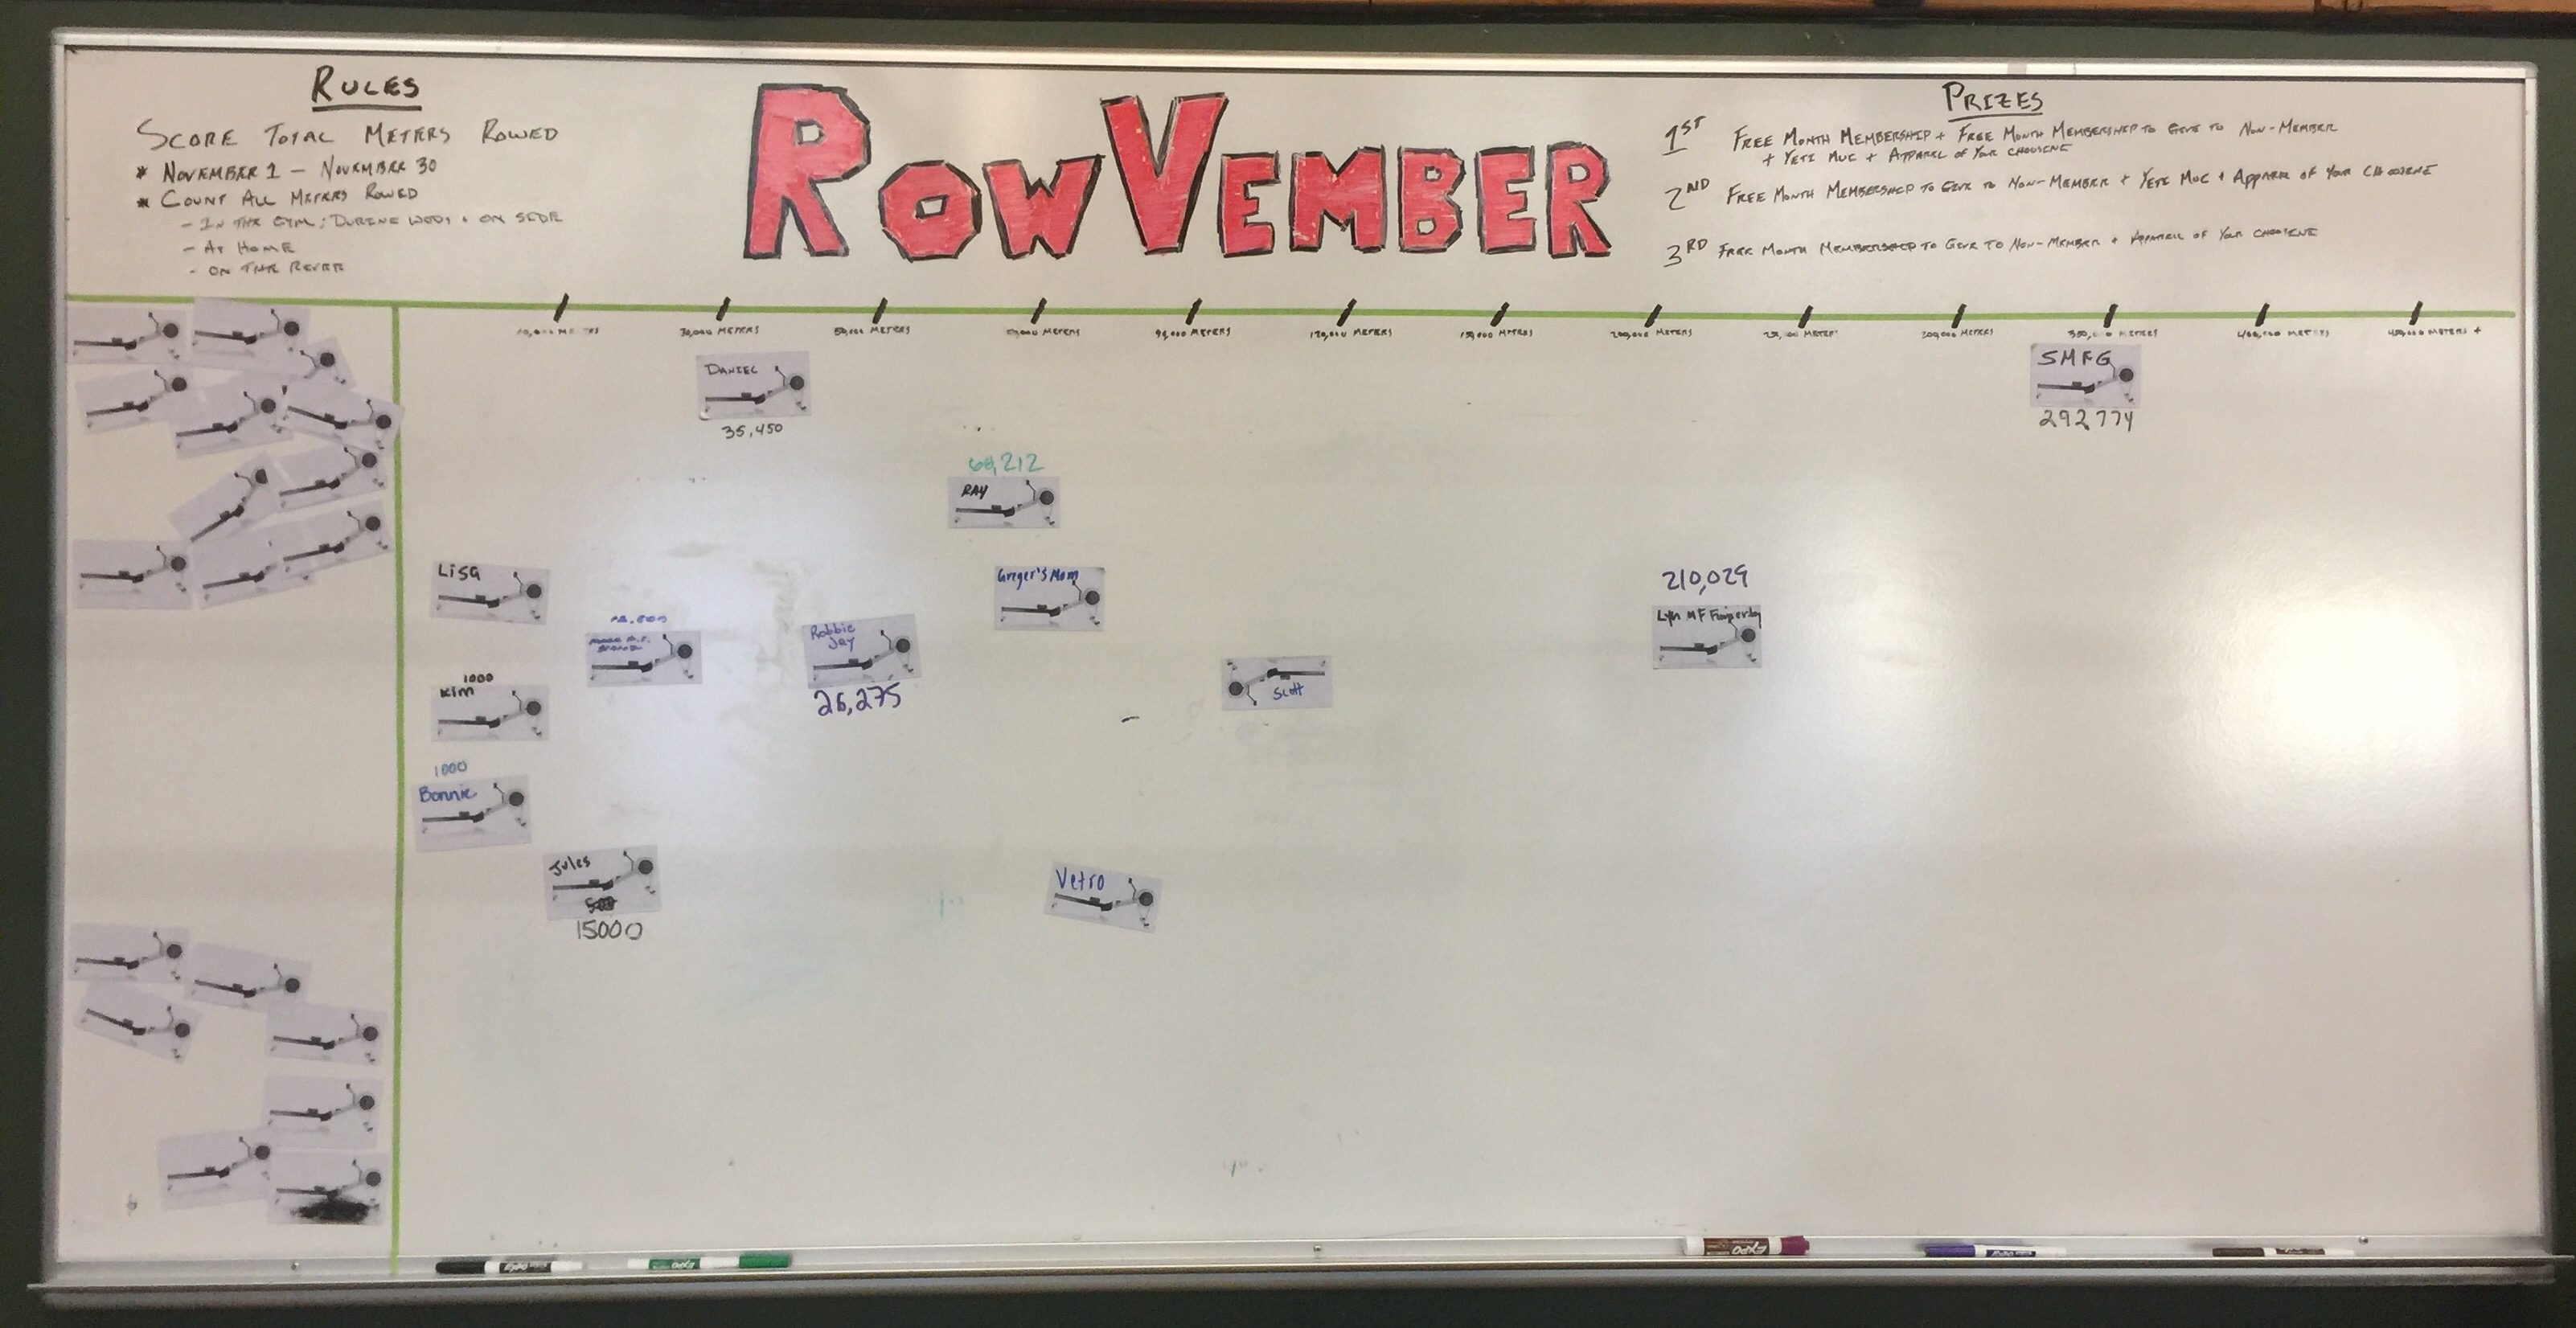 RowVember Totals - Ardmore